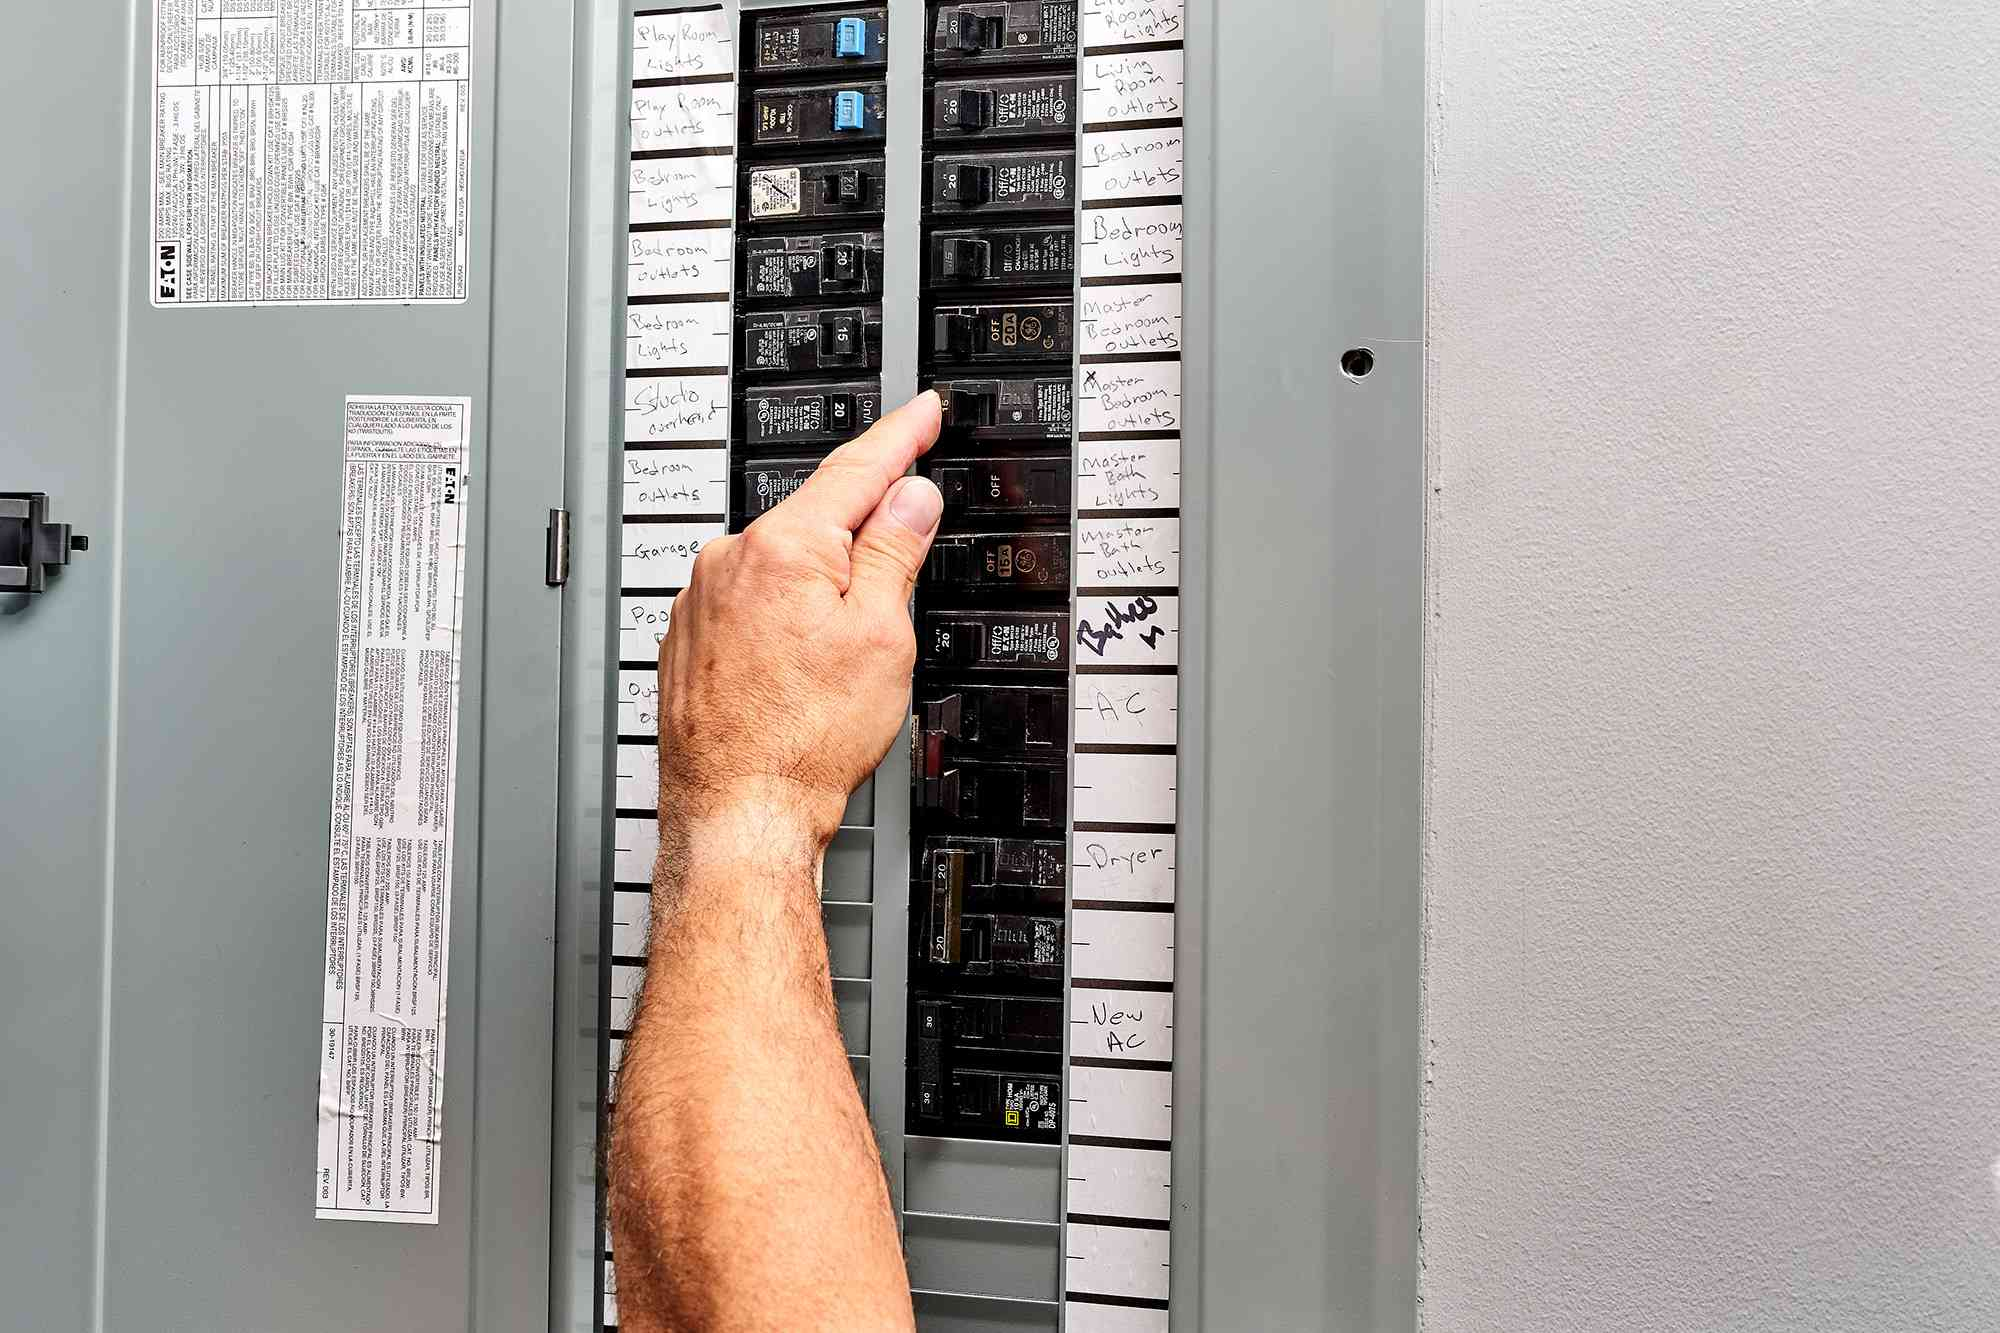 Circuit power being turned off in electric service panel